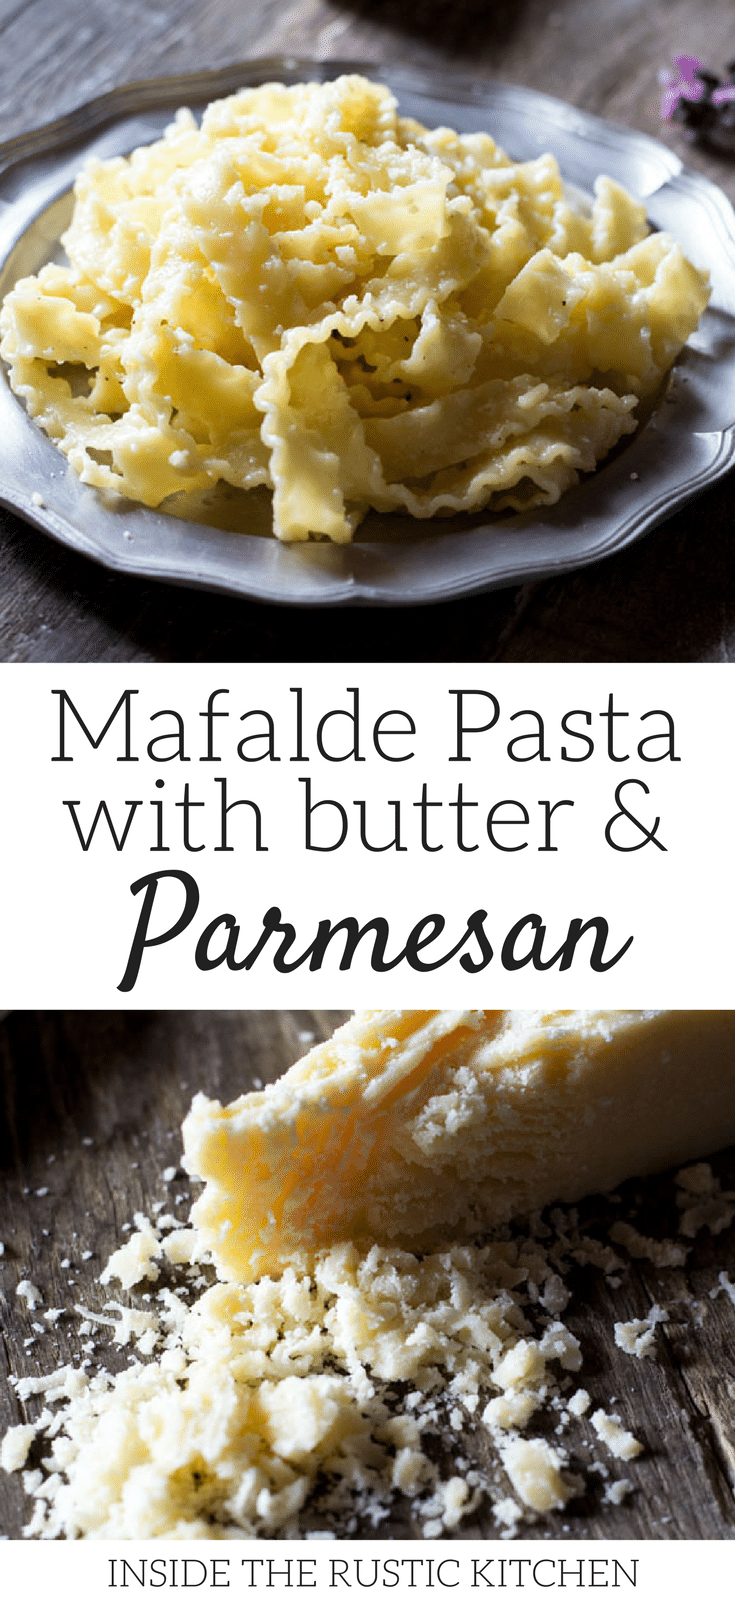 Mafalde pasta with butter and parmesan cheese. This recipe is incredibly easy and is perfect cheesy comfort food. Four ingredient pasta recipe ready in 10 minutes. More authentic Italian recipes at insidetherustickitchen.com